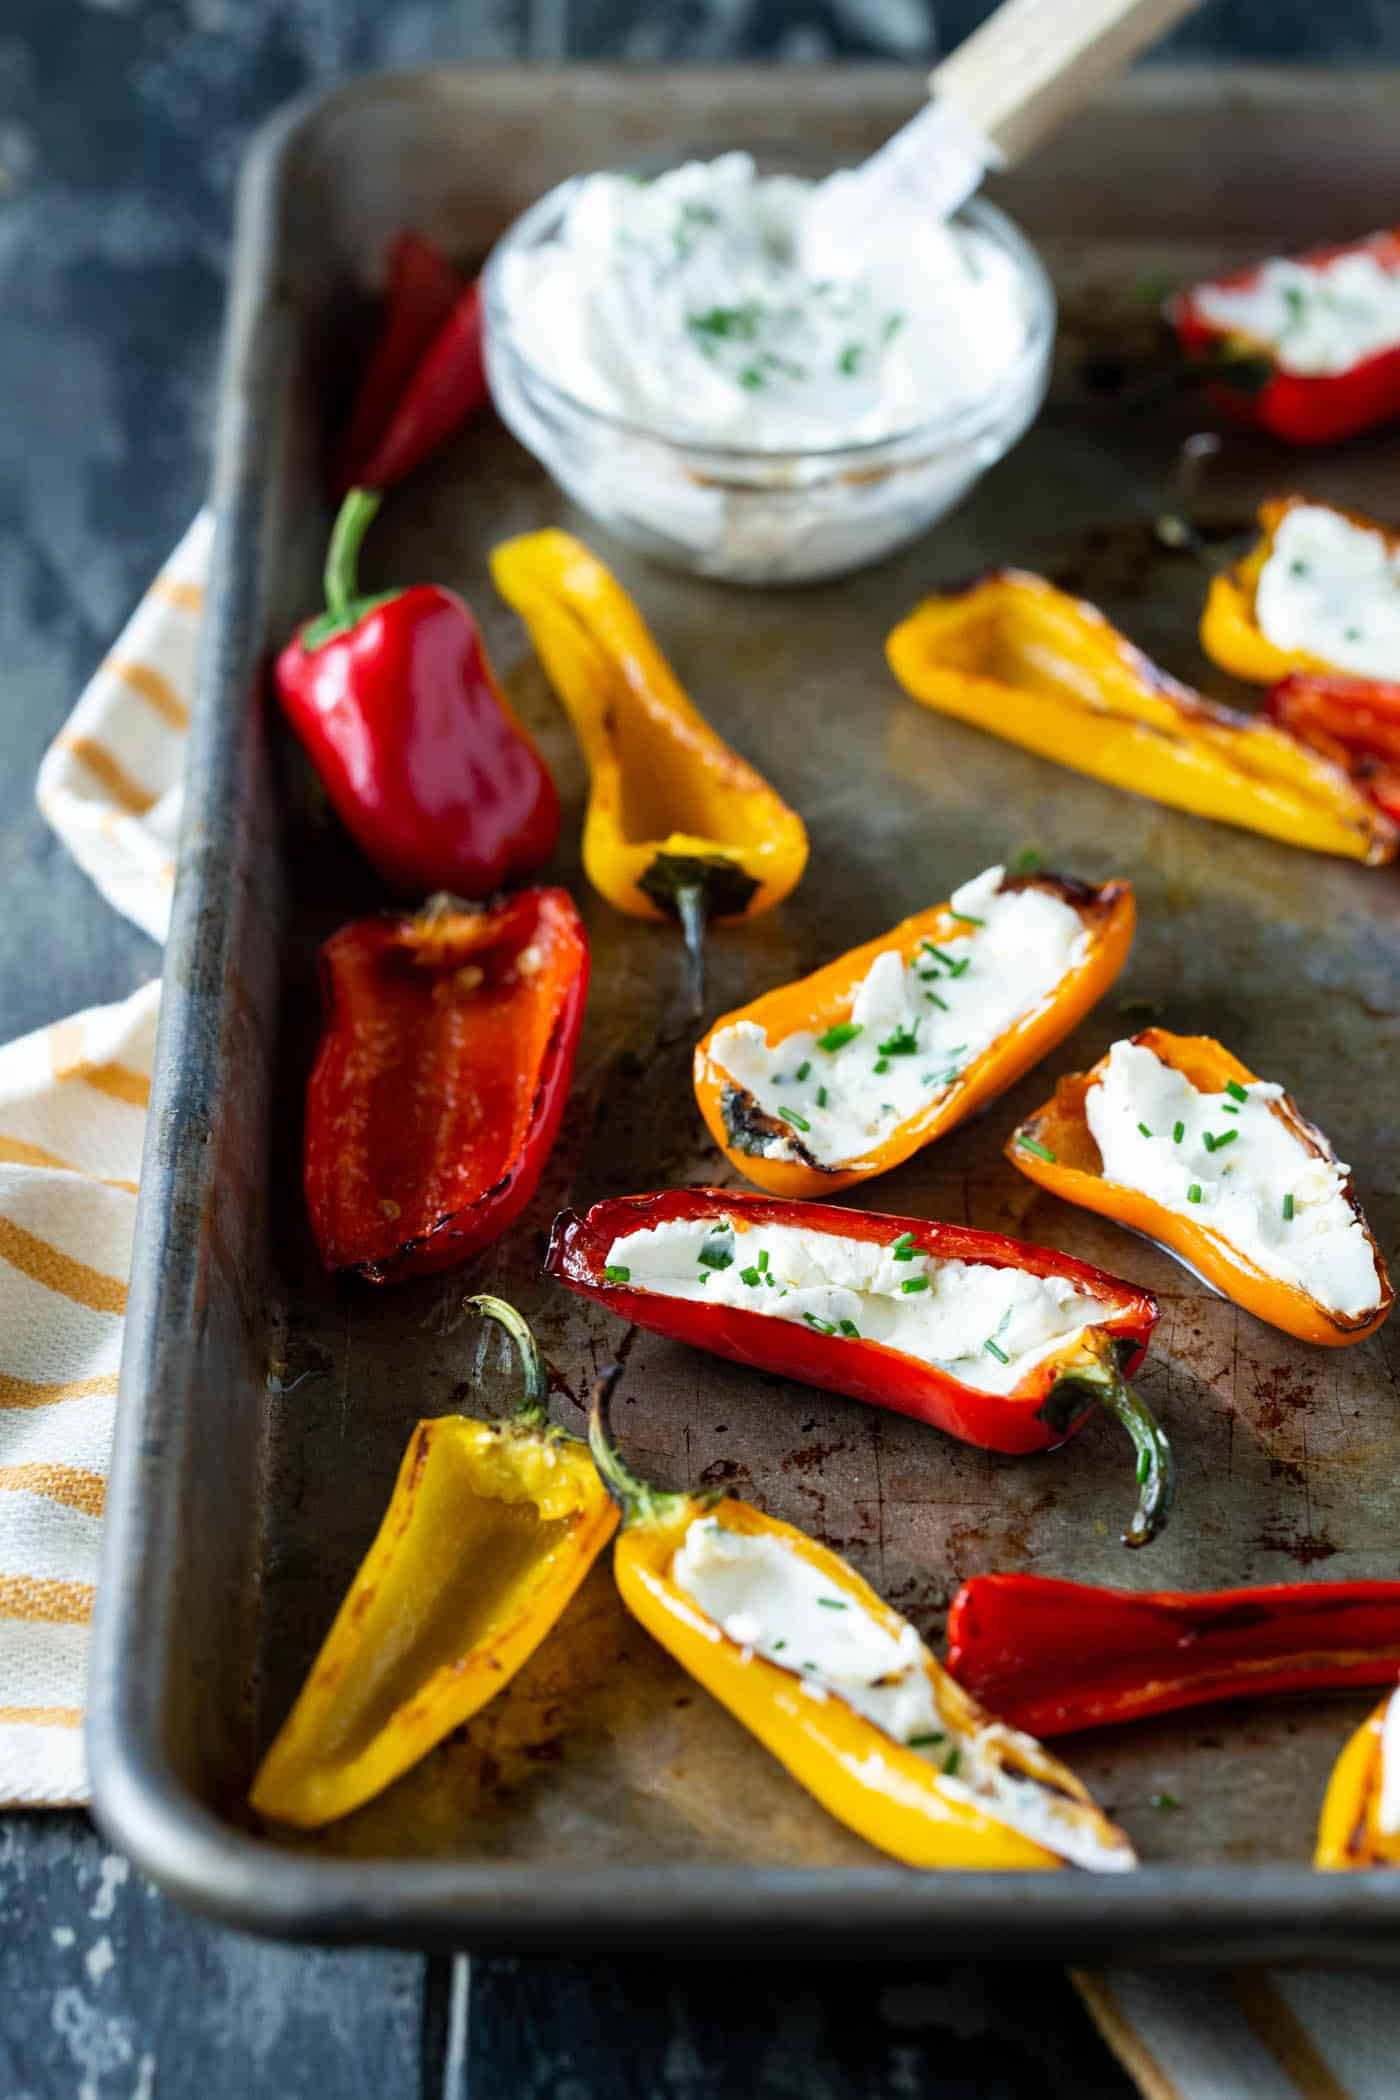 Grilled peppers with goat cheese on sheet pan garnished with fresh chives.